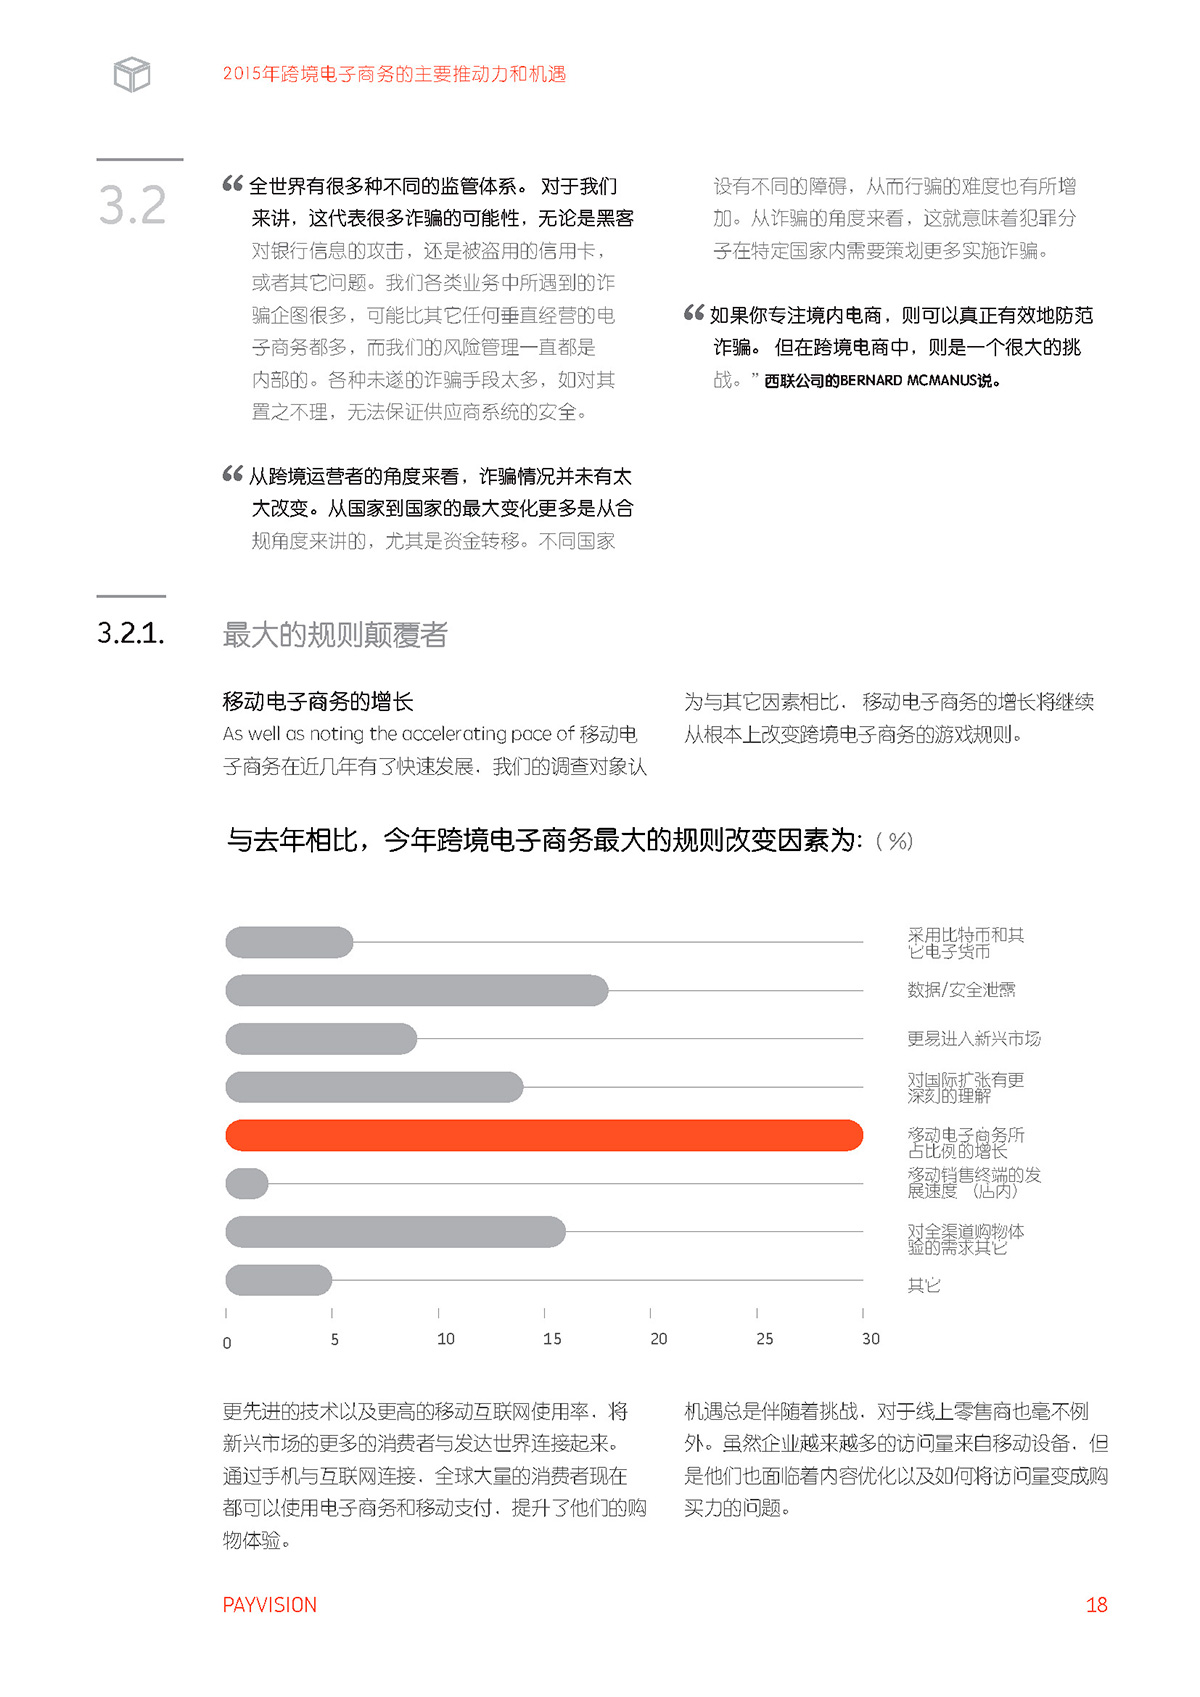 white paper key business drivers chinees